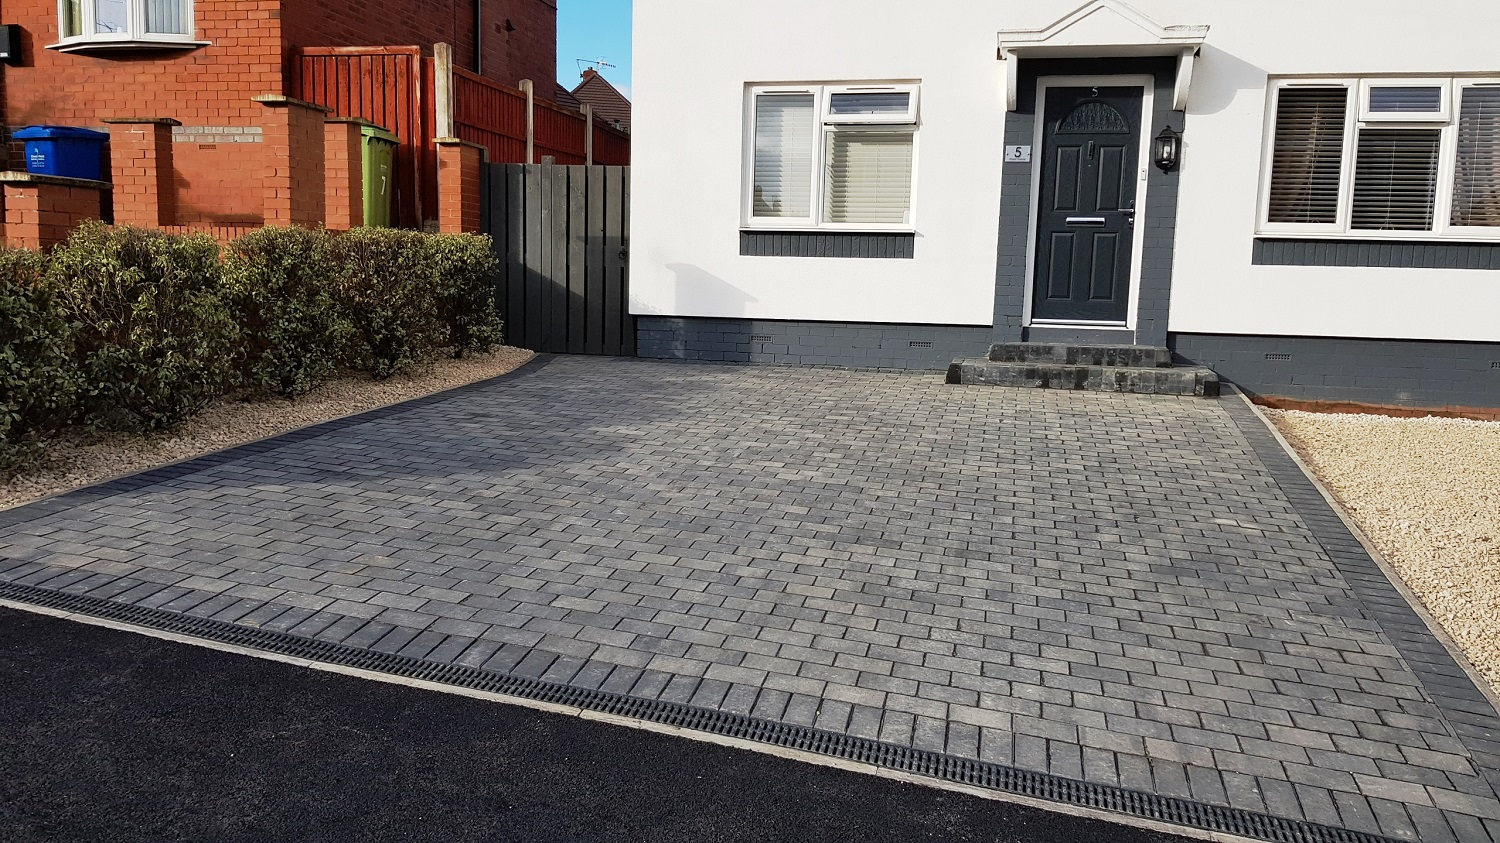 C38 Plaspave Premia Granite Stone Block Paving Driveway at Boythorpe in Chesterfield